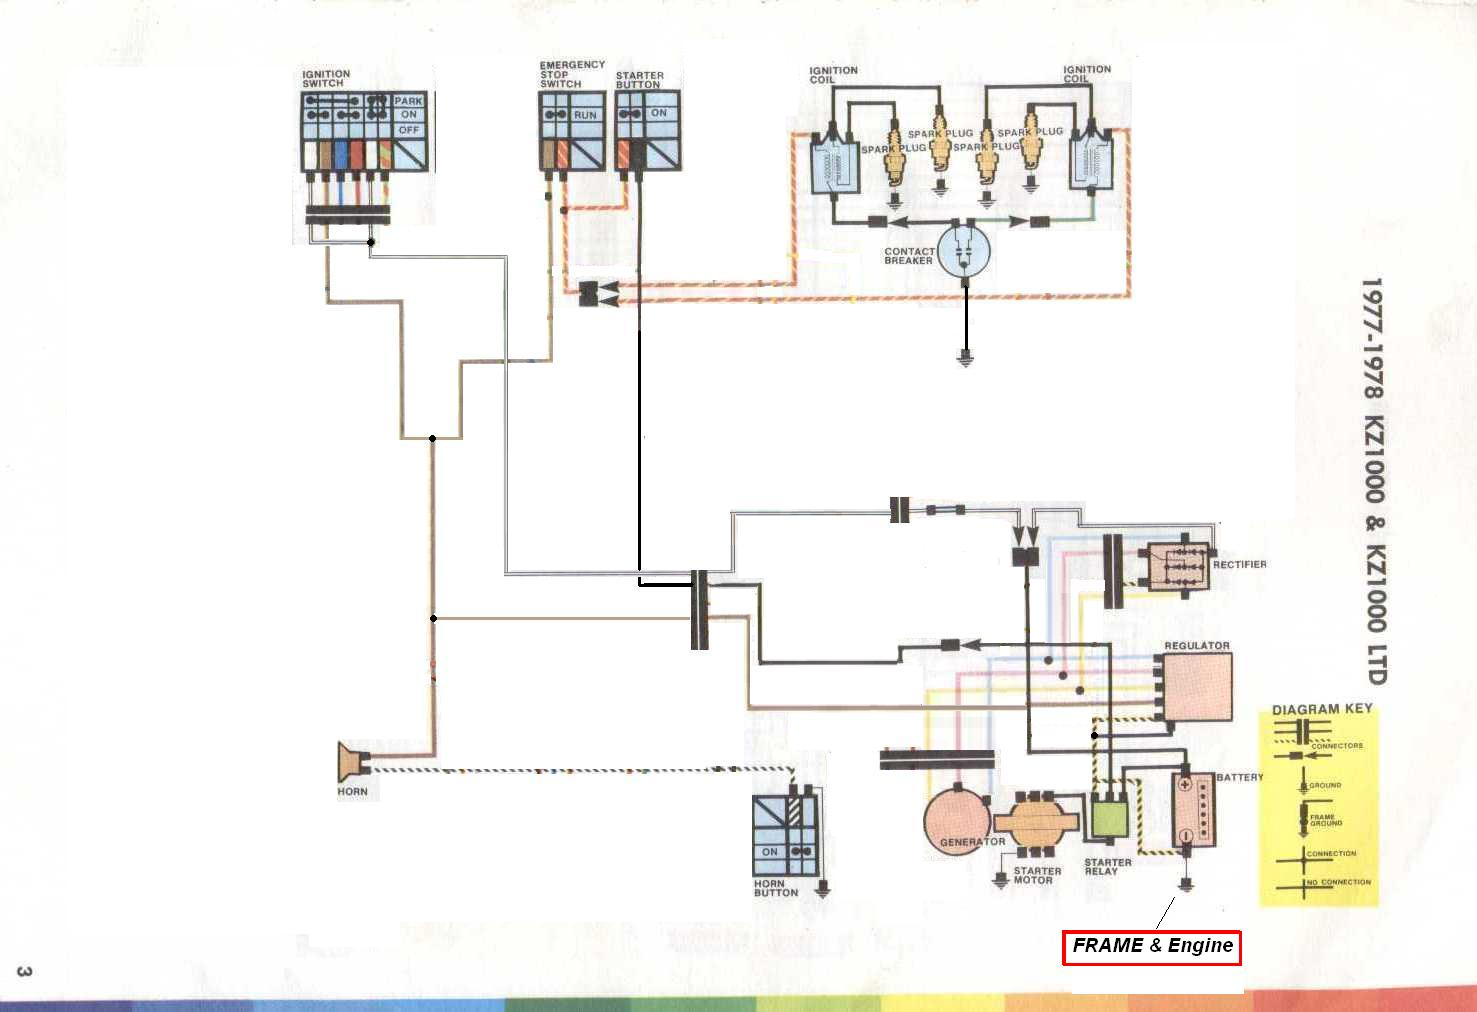 B2a Kz650 Wiring Diagram - Schema Diagram Database on h1 wiring diagram, z1000 wiring diagram, klr650 wiring diagram, zx10 wiring diagram, er6n wiring diagram, ninja 250r wiring diagram, kz1300 wiring diagram, z1 wiring diagram, gs550 wiring diagram, zx1000 wiring diagram, kl600 wiring diagram, klr250 wiring diagram, kz1000 wiring diagram, kawasaki wiring diagram, kz440 wiring diagram, zl900 eliminator wiring diagram, gs750 wiring diagram, zg1000 wiring diagram, z400 wiring diagram, ex250 wiring diagram,